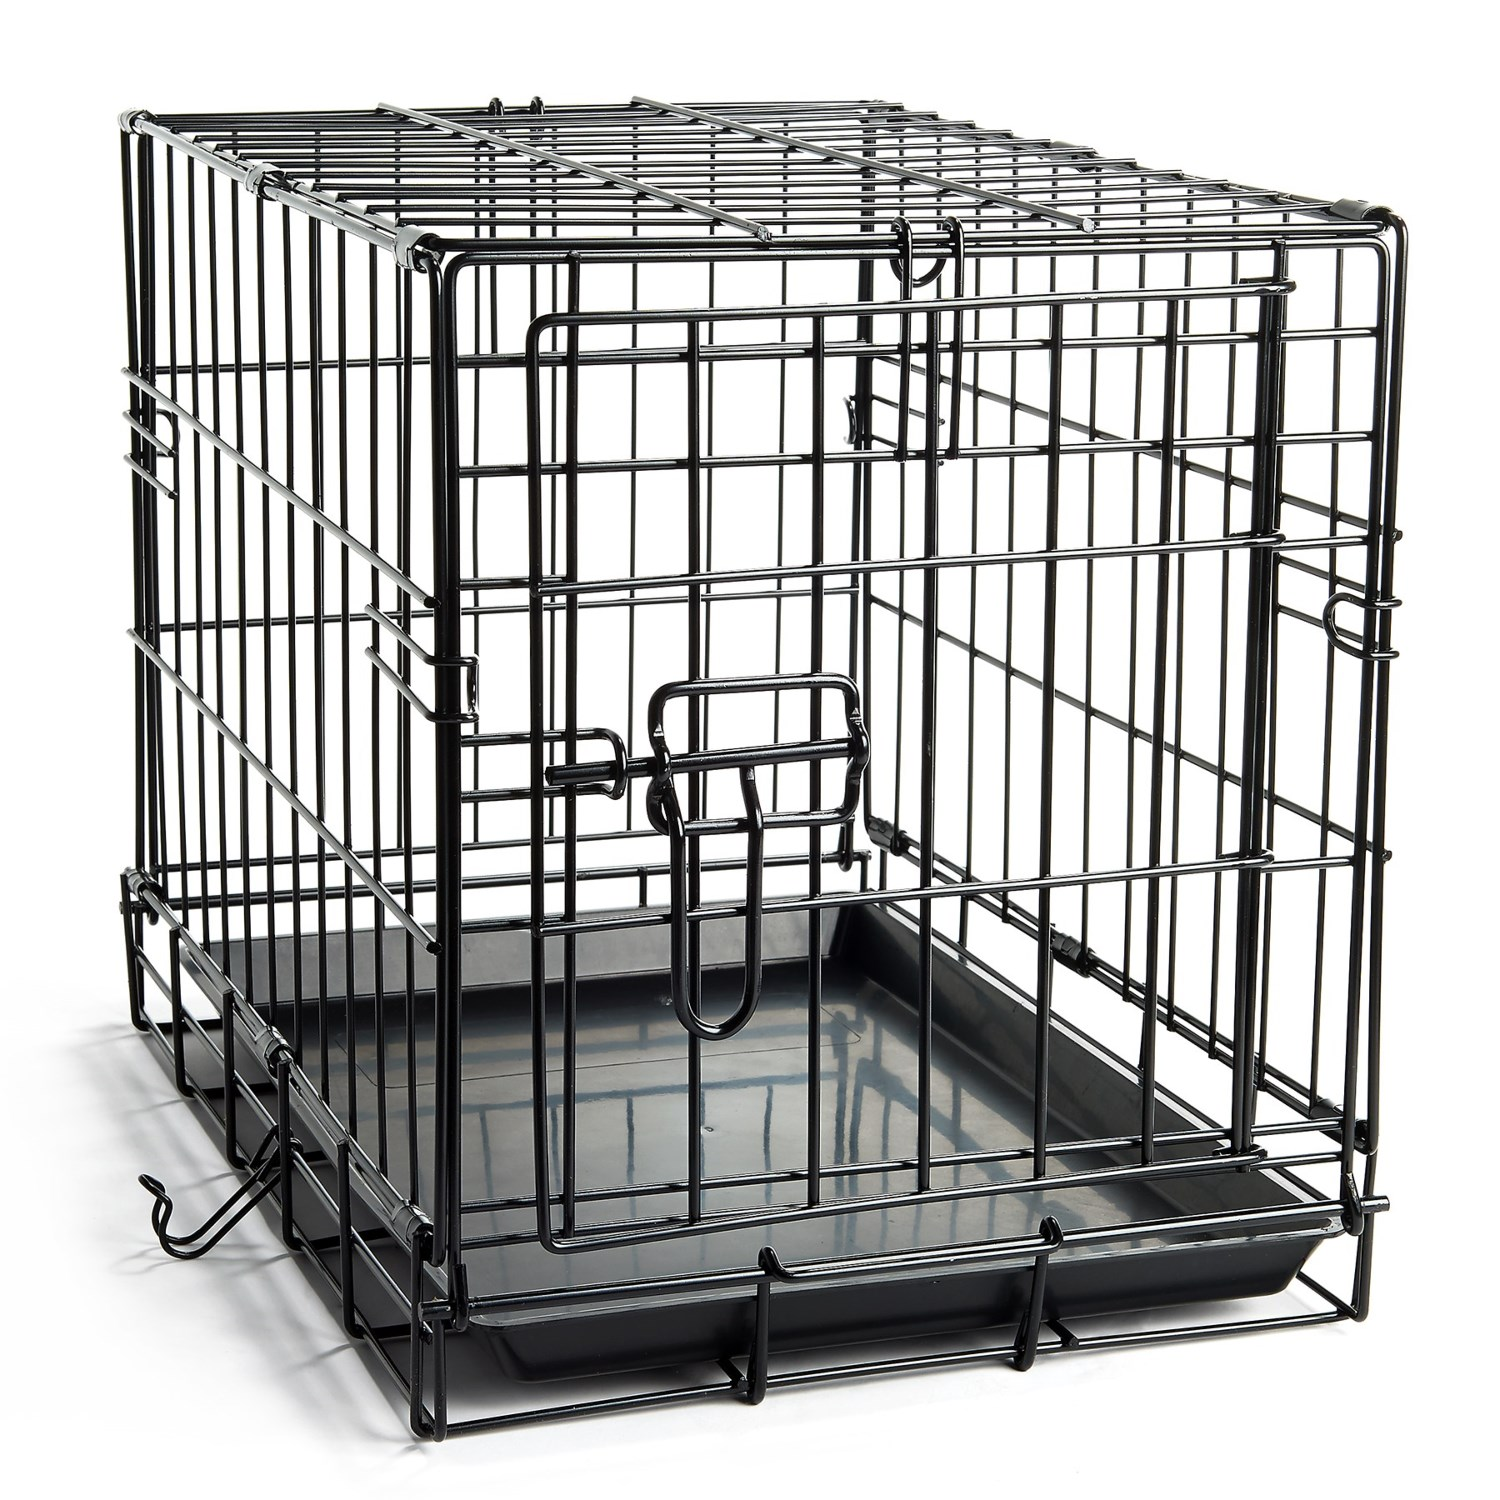 be good easy pet crate  extra small  save  - be good easy pet crate  extra small in black